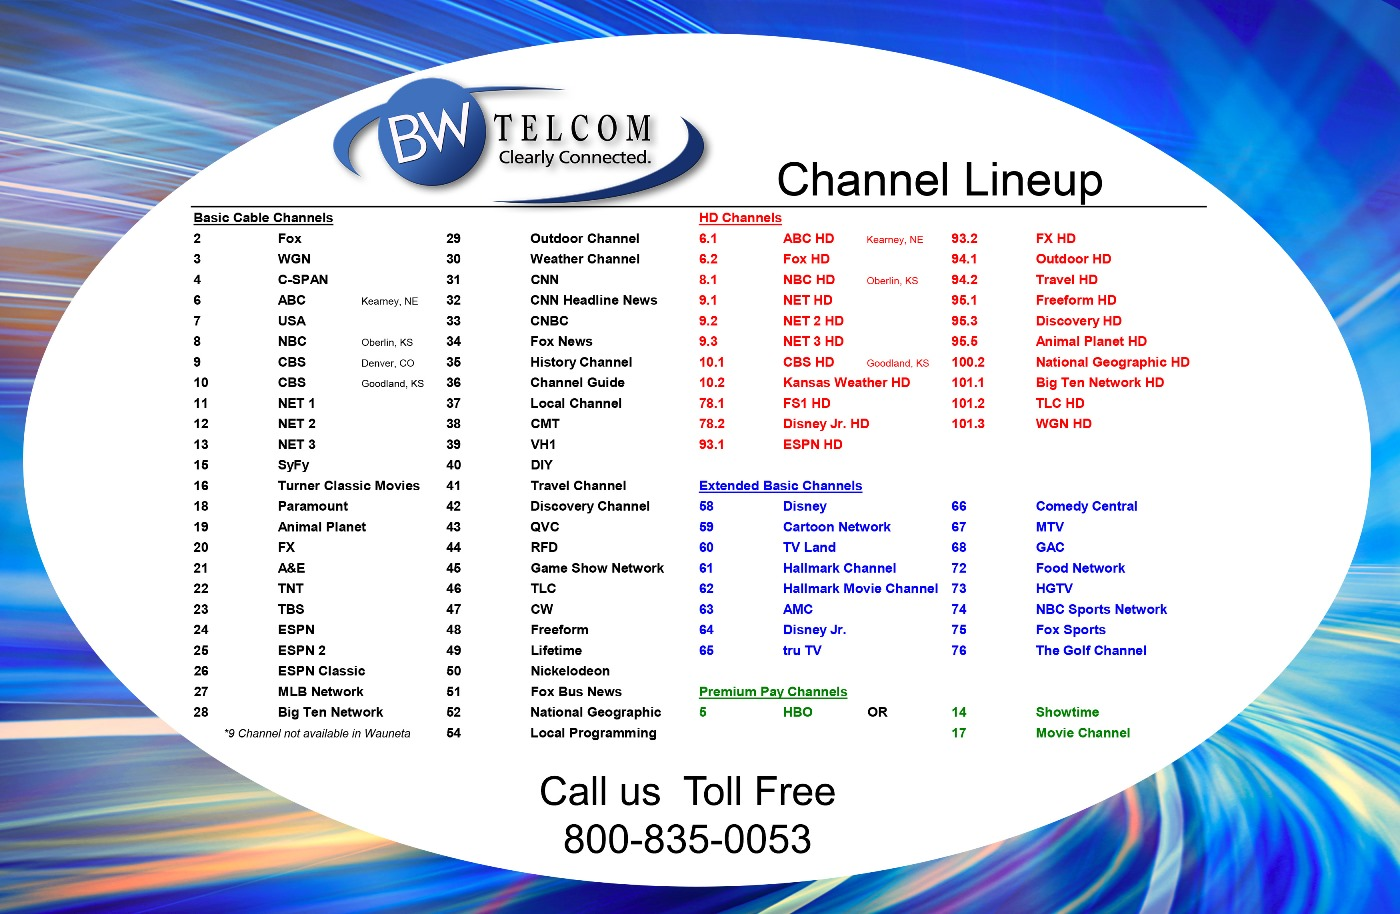 Cable Television – BWTelcom